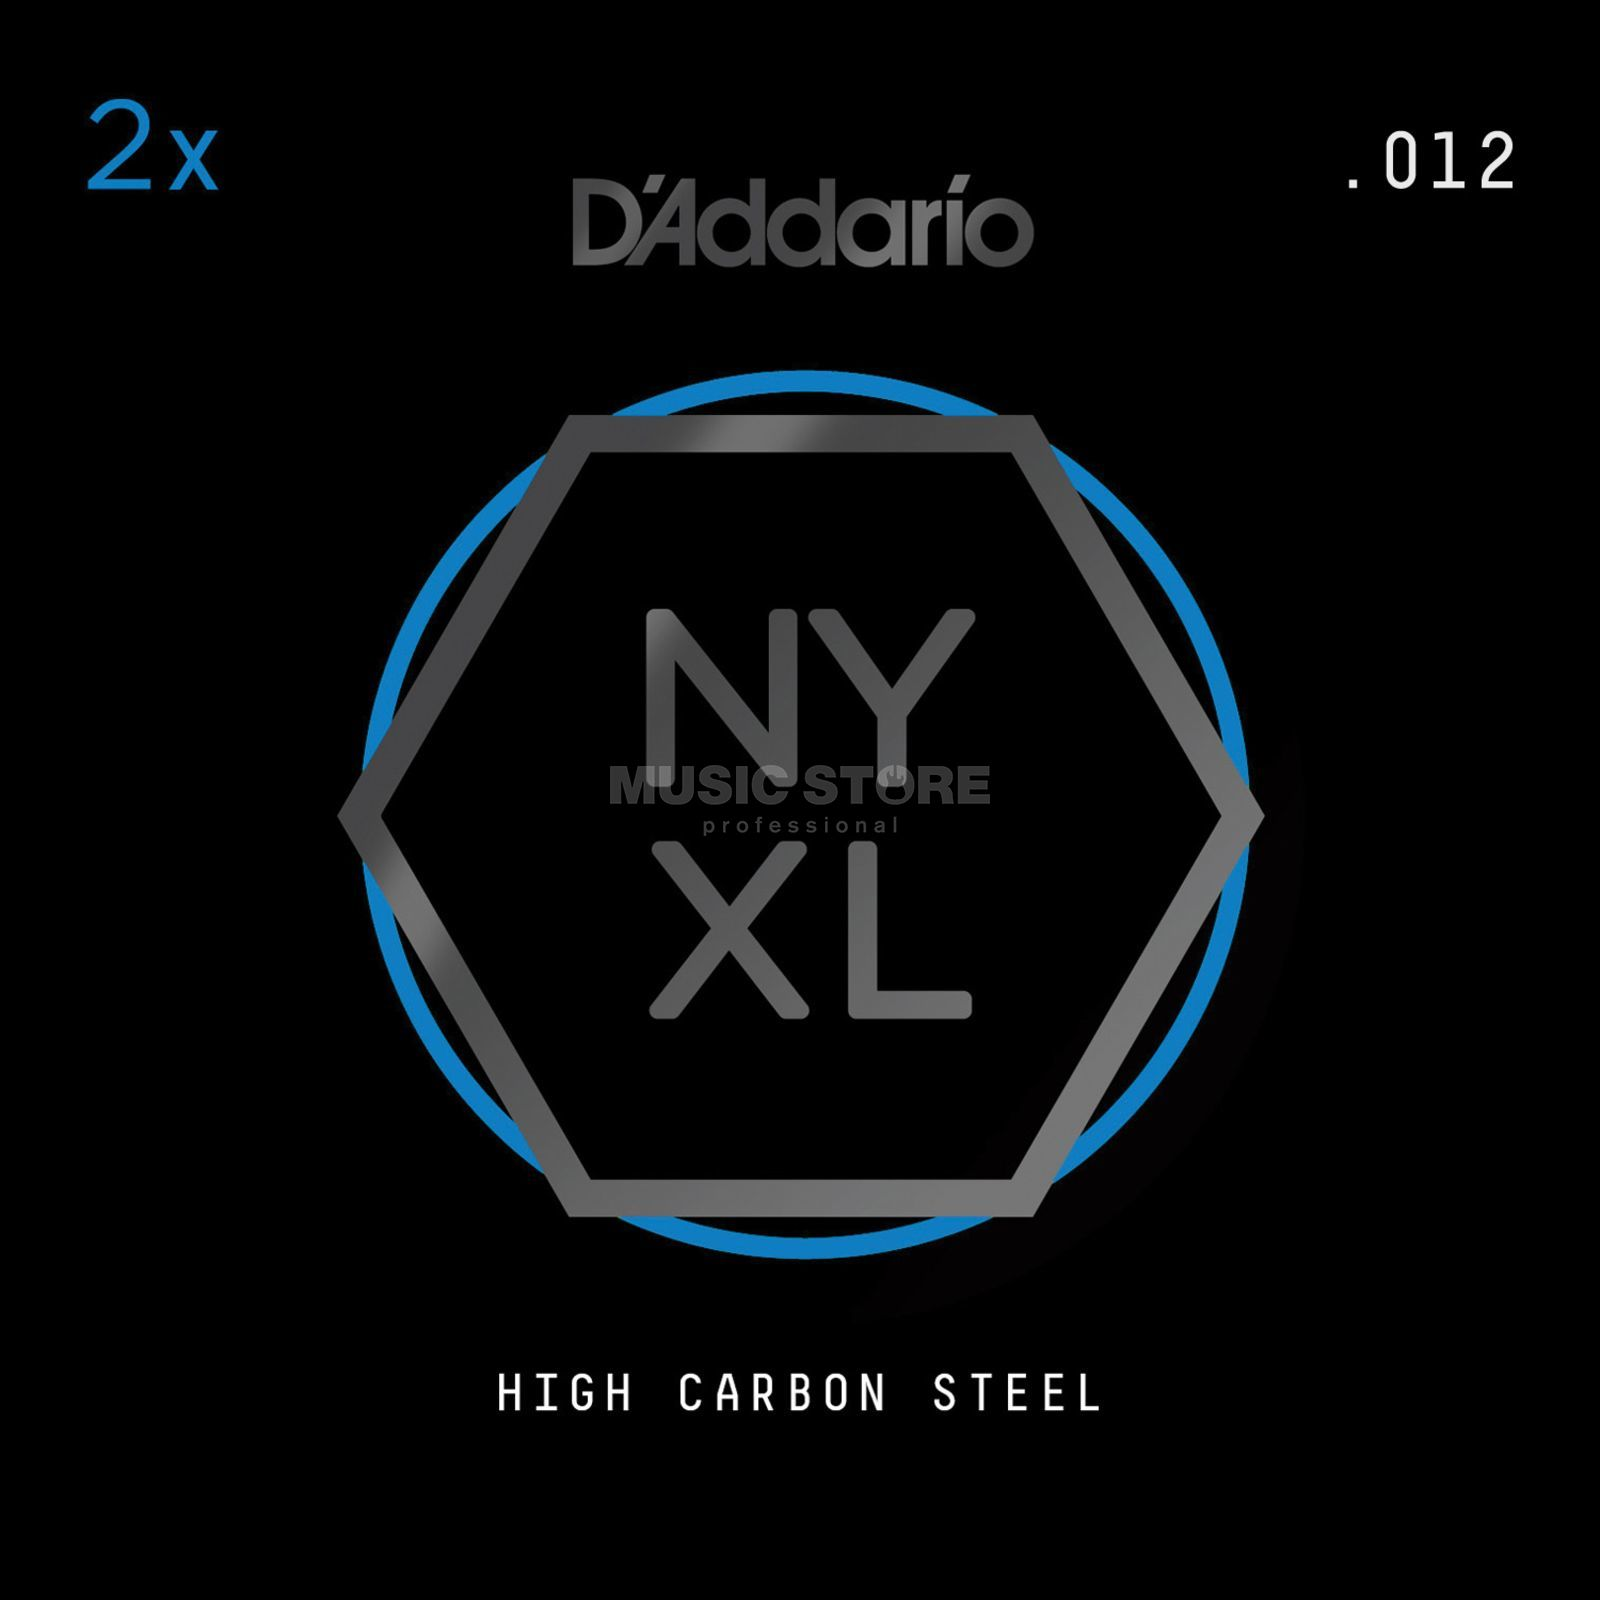 D'Addario NYPL012 Plain Single String 2-Pack - High Carbon Steel Produktbillede